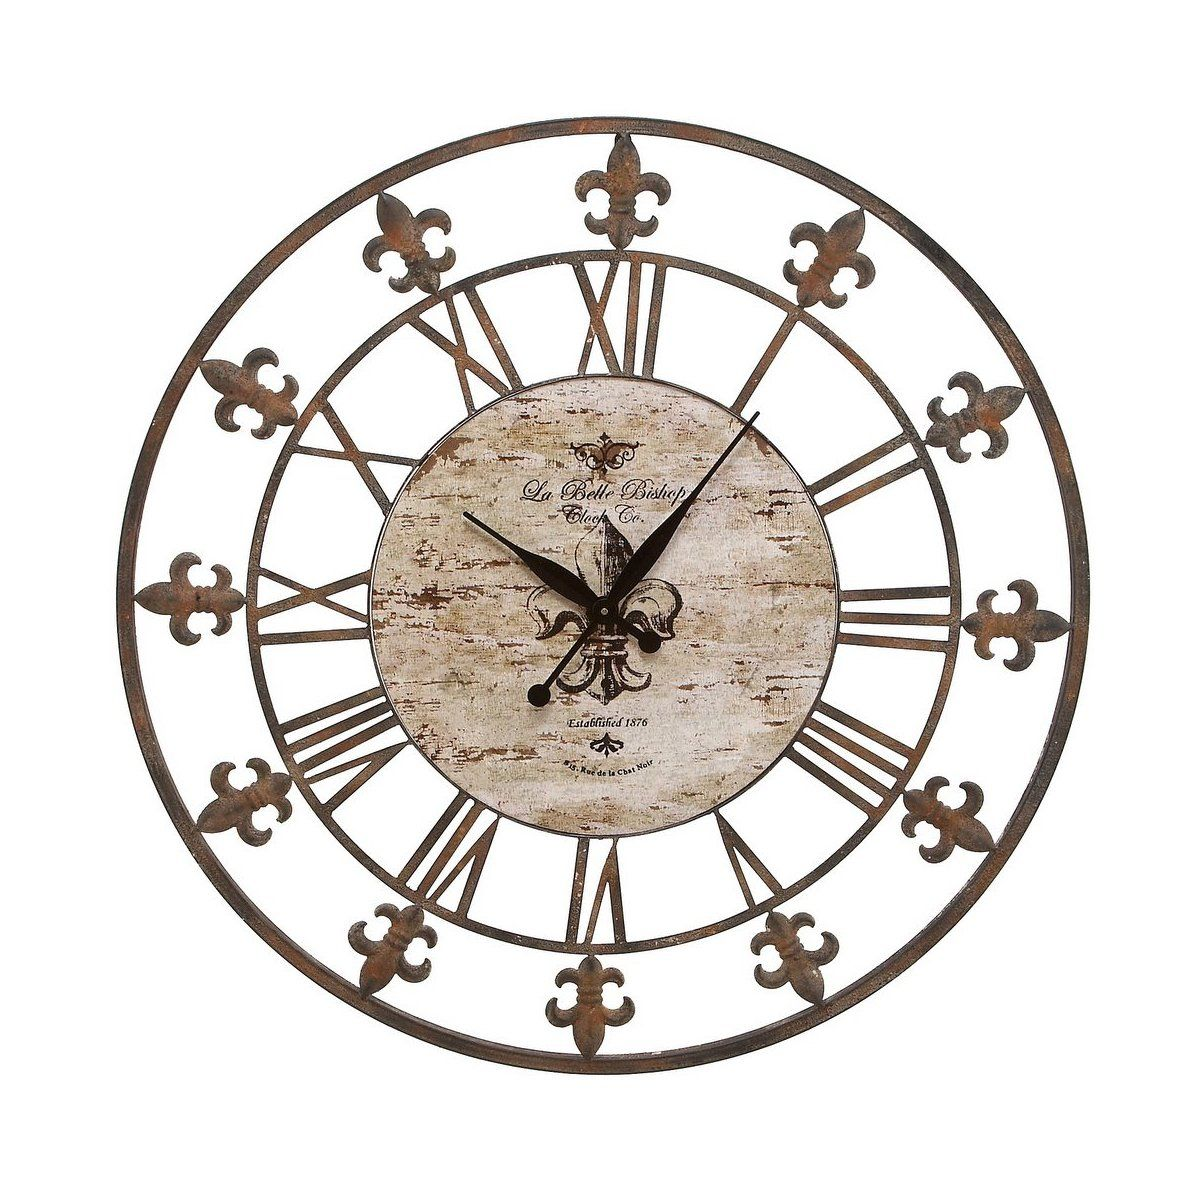 Shop Aspire Home Accents  13813 Wrought Iron Wall Clock at ATG Stores. Browse our wall clocks, all with free shipping and best price guaranteed.